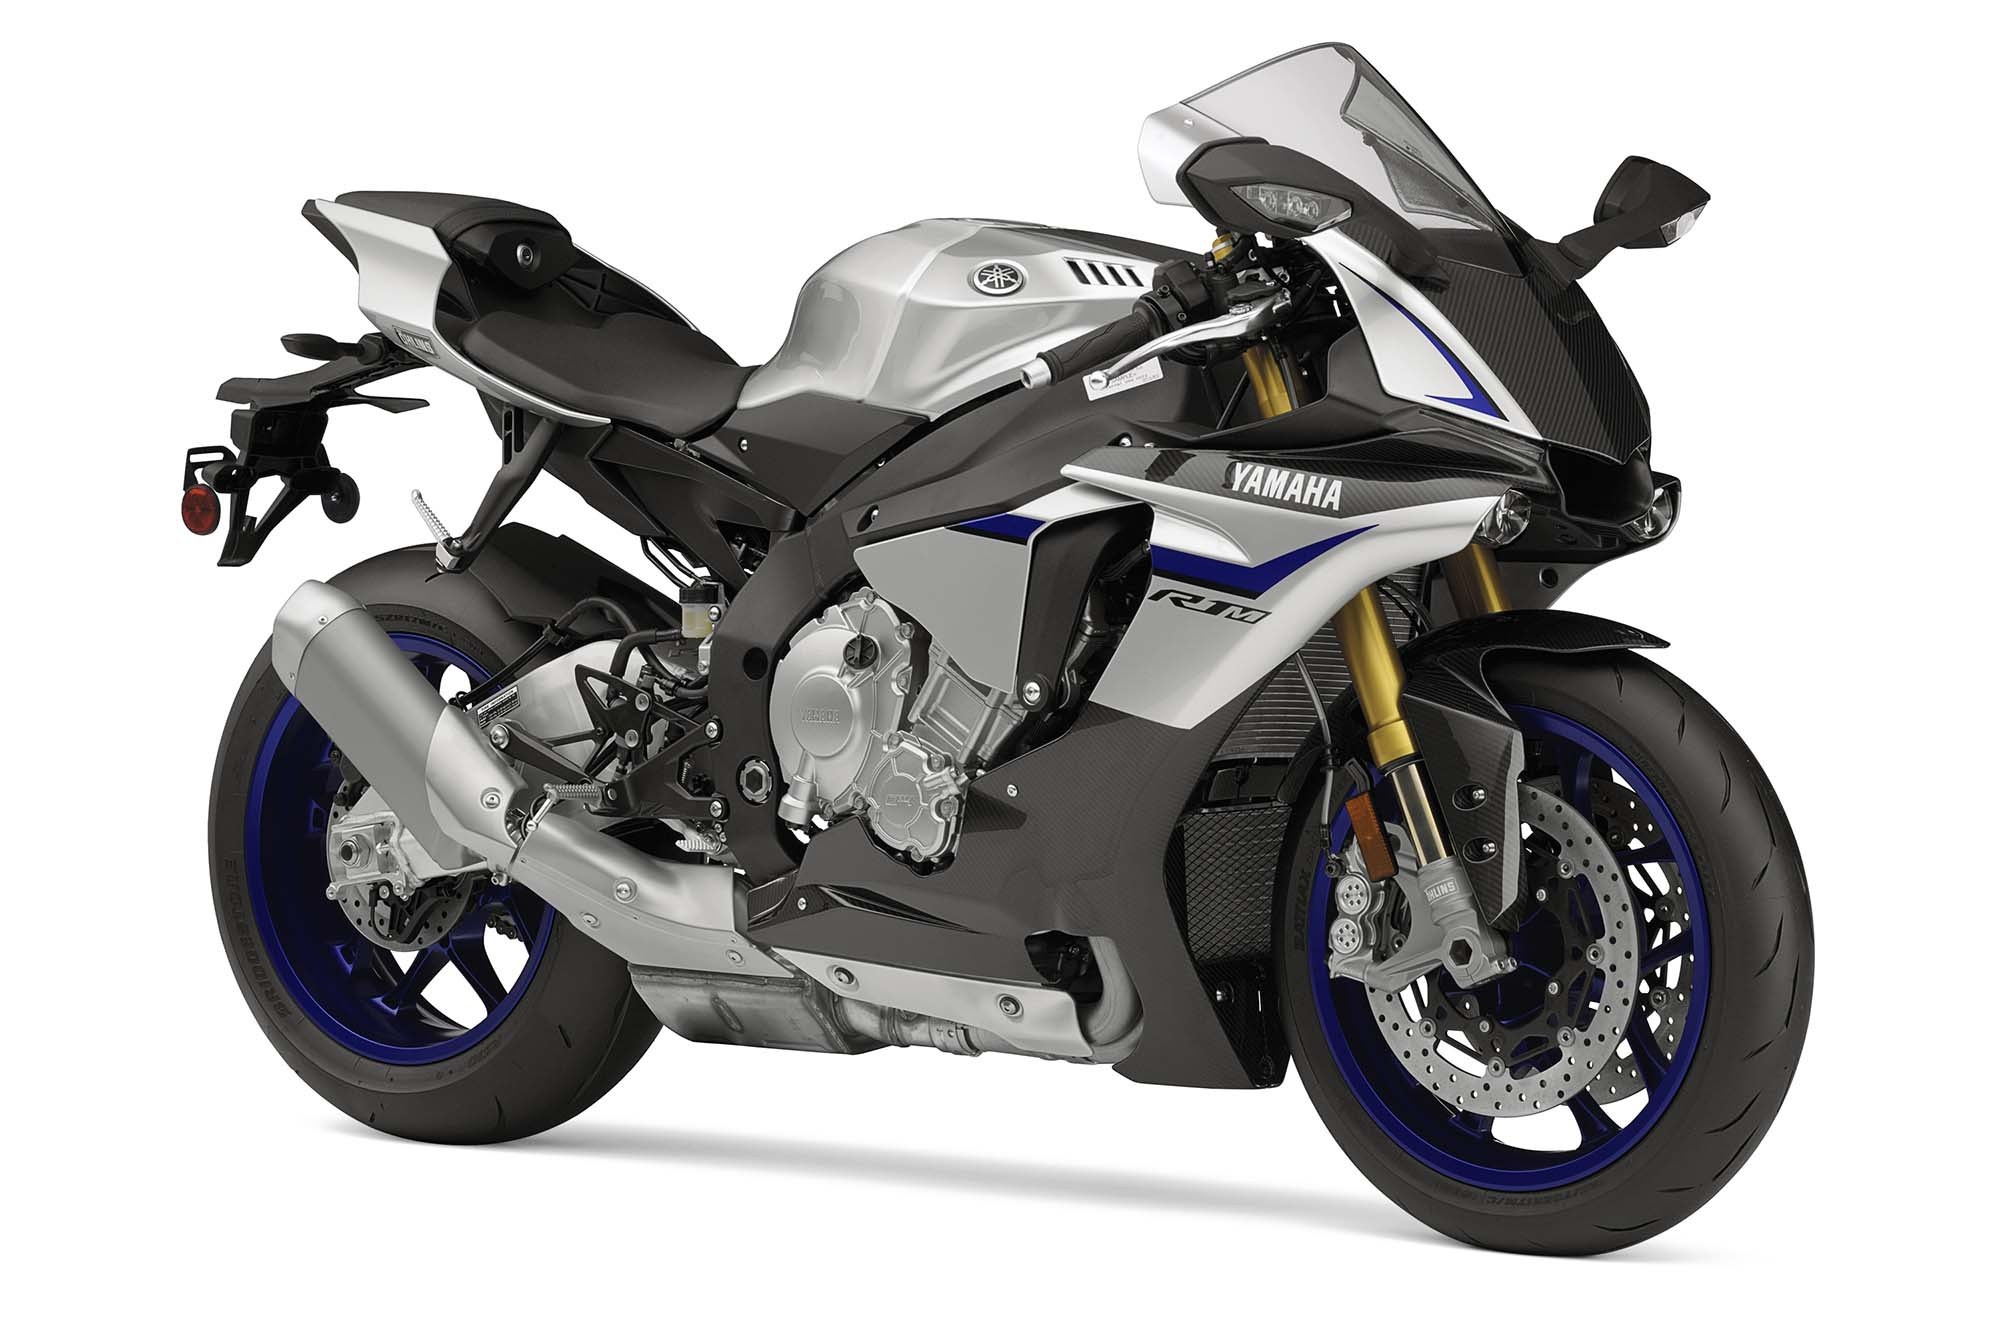 Yamaha R1 Manual Quick Start Guide Of Wiring Diagram Electrical Yzf Motorcycle 2015 2016 Service R1f Y Rh Sellfy Com 2012